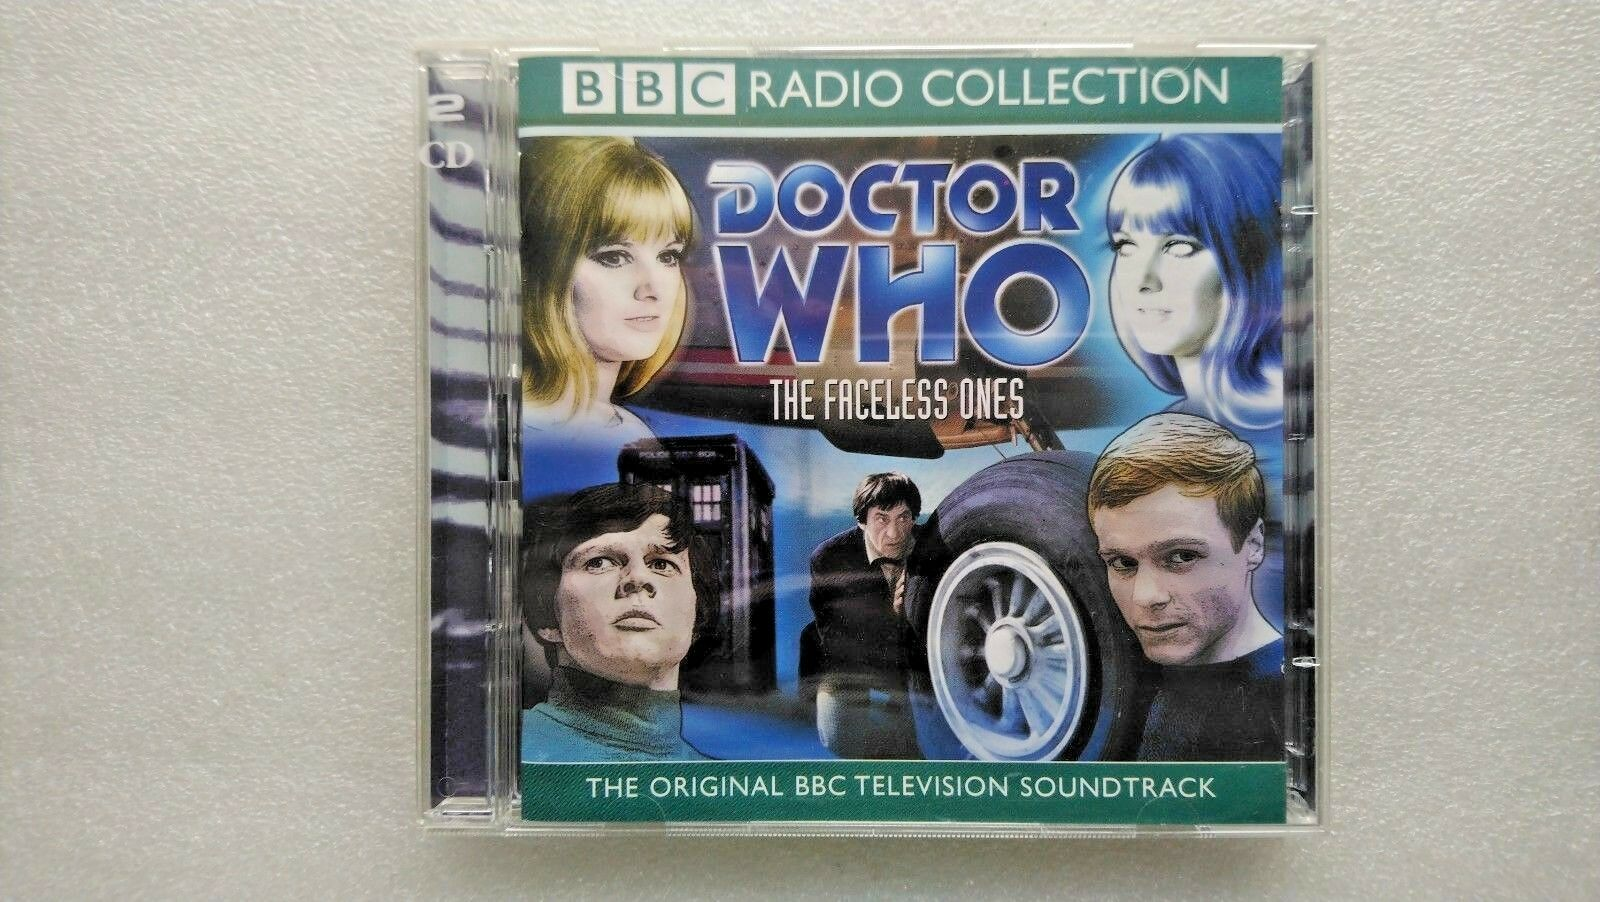 Doctor Who: Faceless Ones by BBC Audio (CD-Audio, 2002) - Patrick Troughton